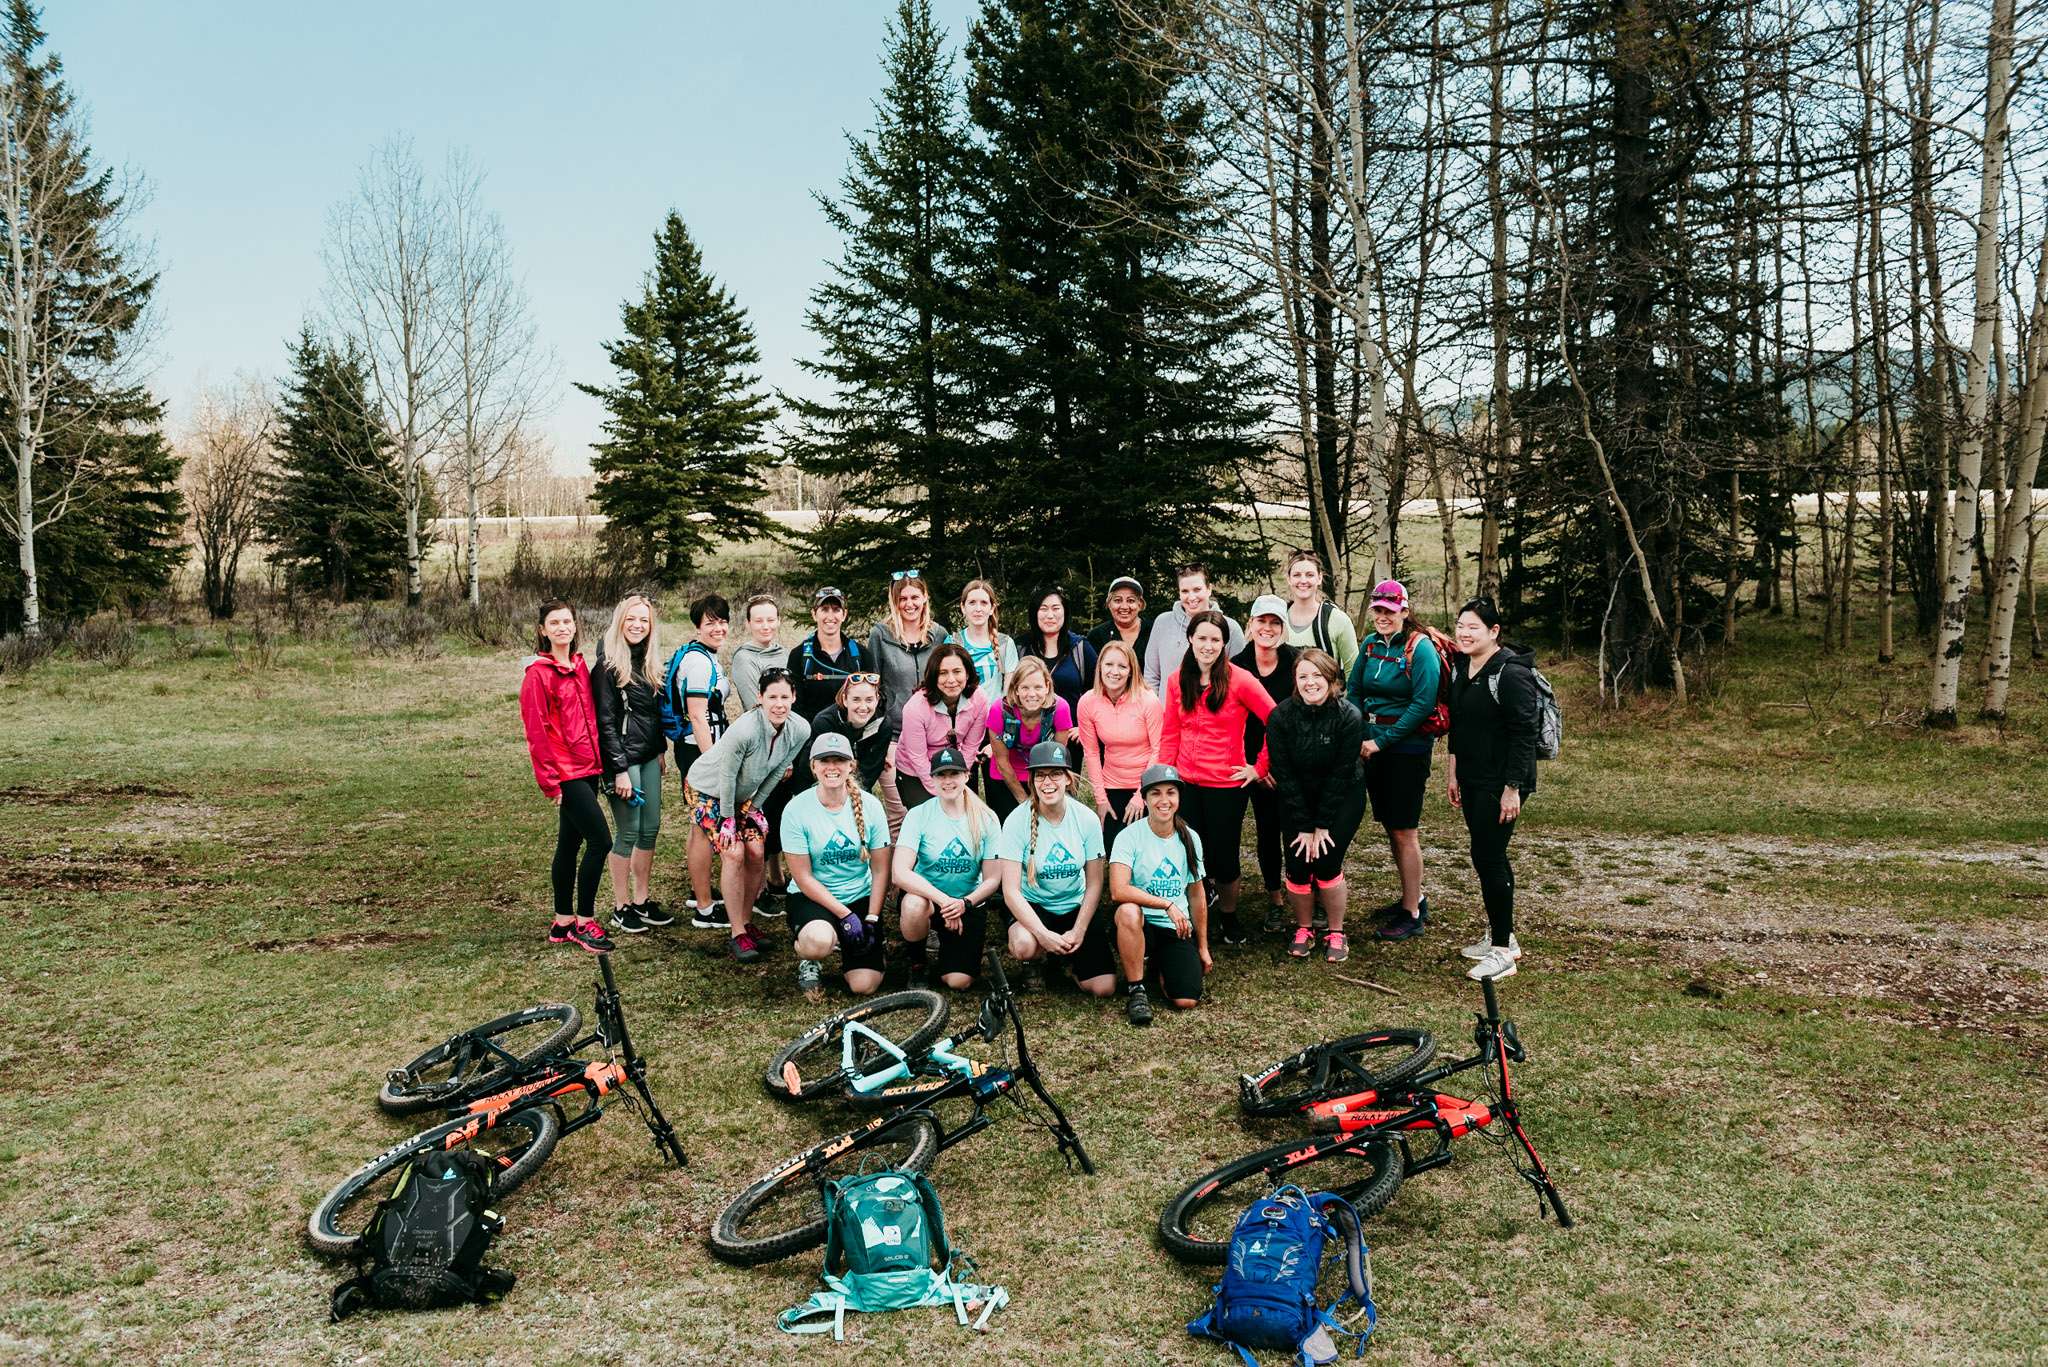 May 27, 2019 - Shred Sisters - Bragg Creek-40.jpg